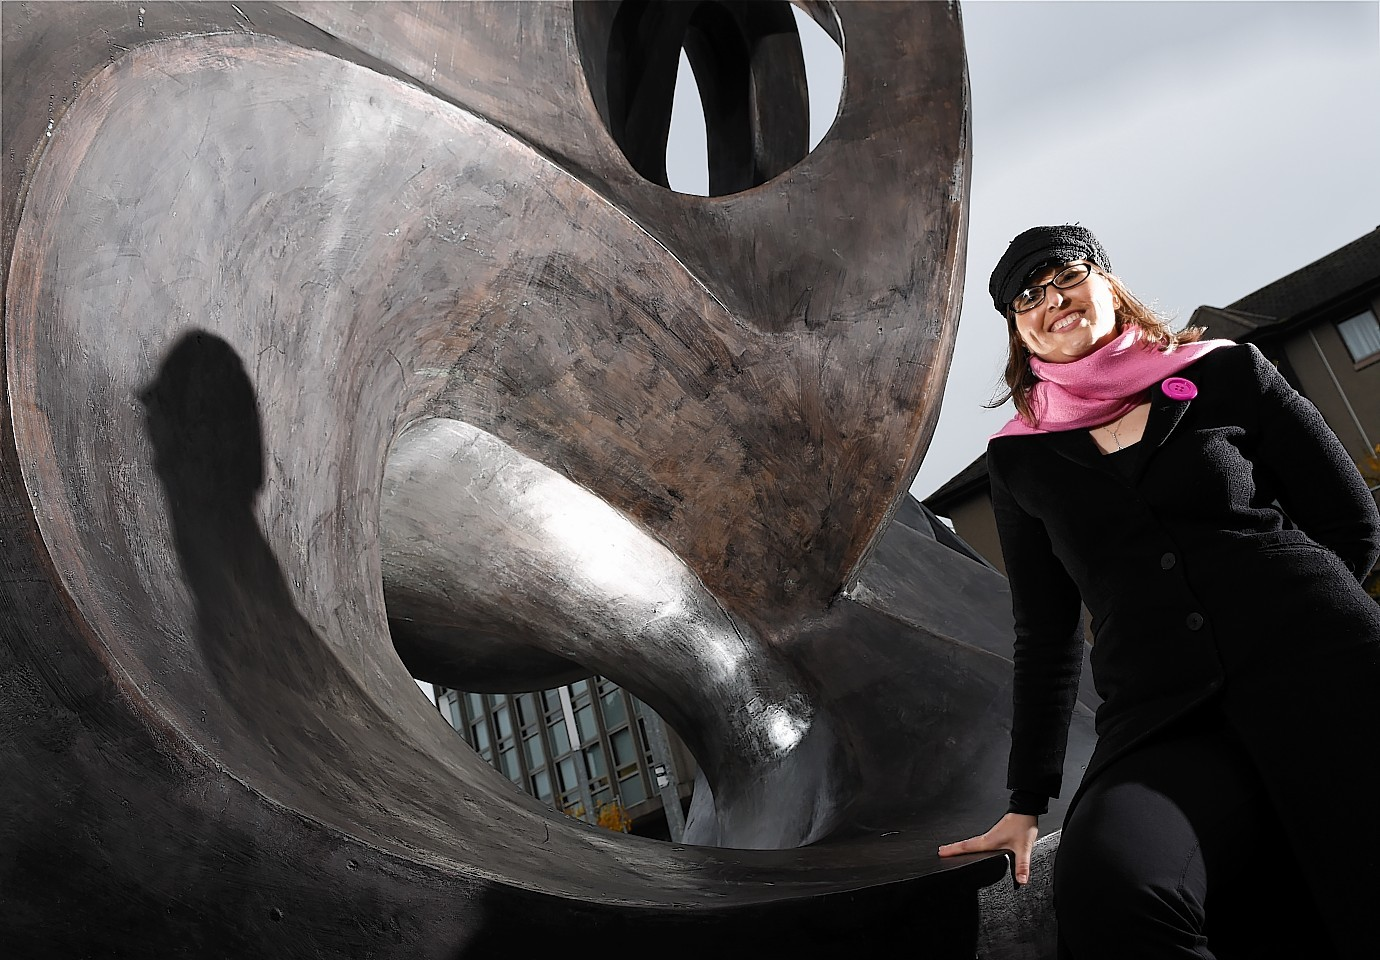 Amy Bryzgel, lecturer in film and visual culture, at the Evolutionary Loop sculpture at Aberdeen University (Kevin Emslie)